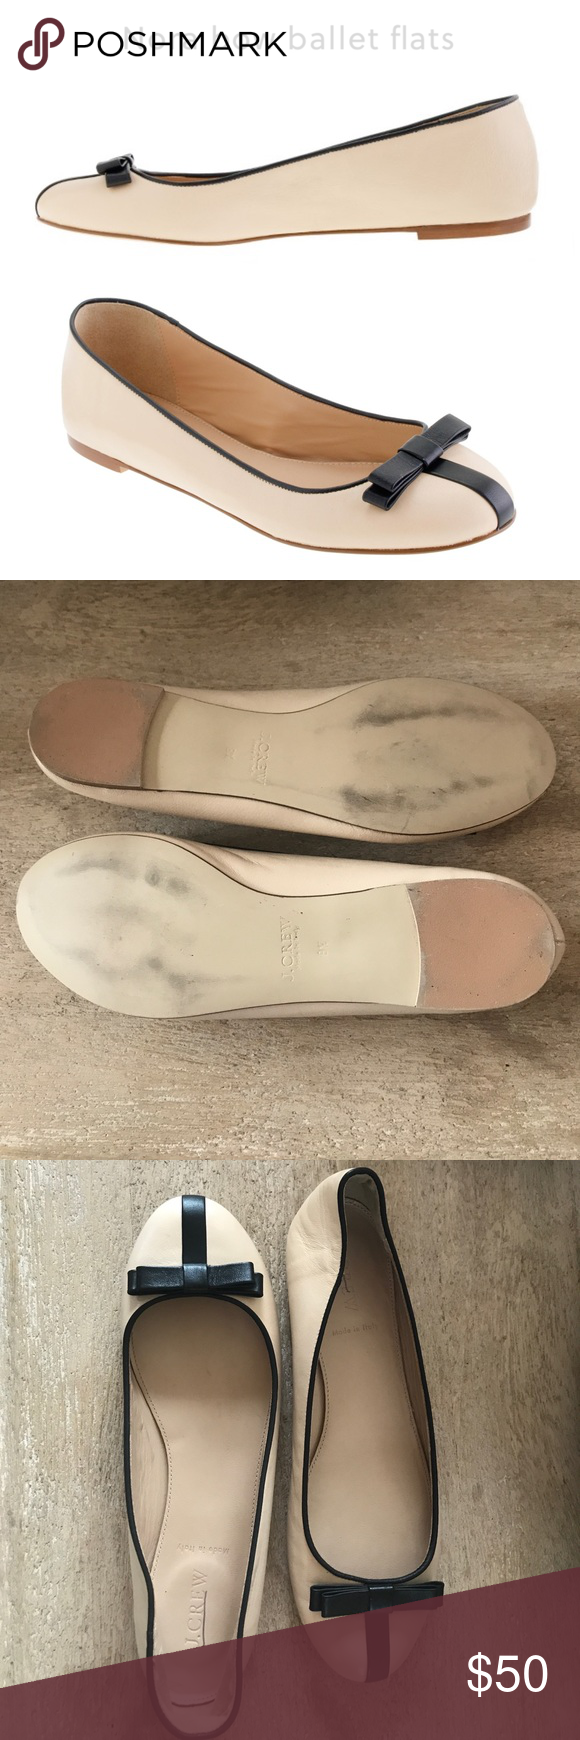 J. Crew Nora ballet bow flats Excellent like new condition! PRODUCT DETAILS Prepare to be charmed out of your heels: We've stepped up the design of our much-loved ballet flats with new details, including a cushioned insole for maximum comfort (and we even removed the shank, making them supremely flexible—talk about raising the barre). Crafted in supple leather and finished with a sweet bow and a vertical stripe at the toe, they might just be our most-worn pair of the season.  Fit true to…